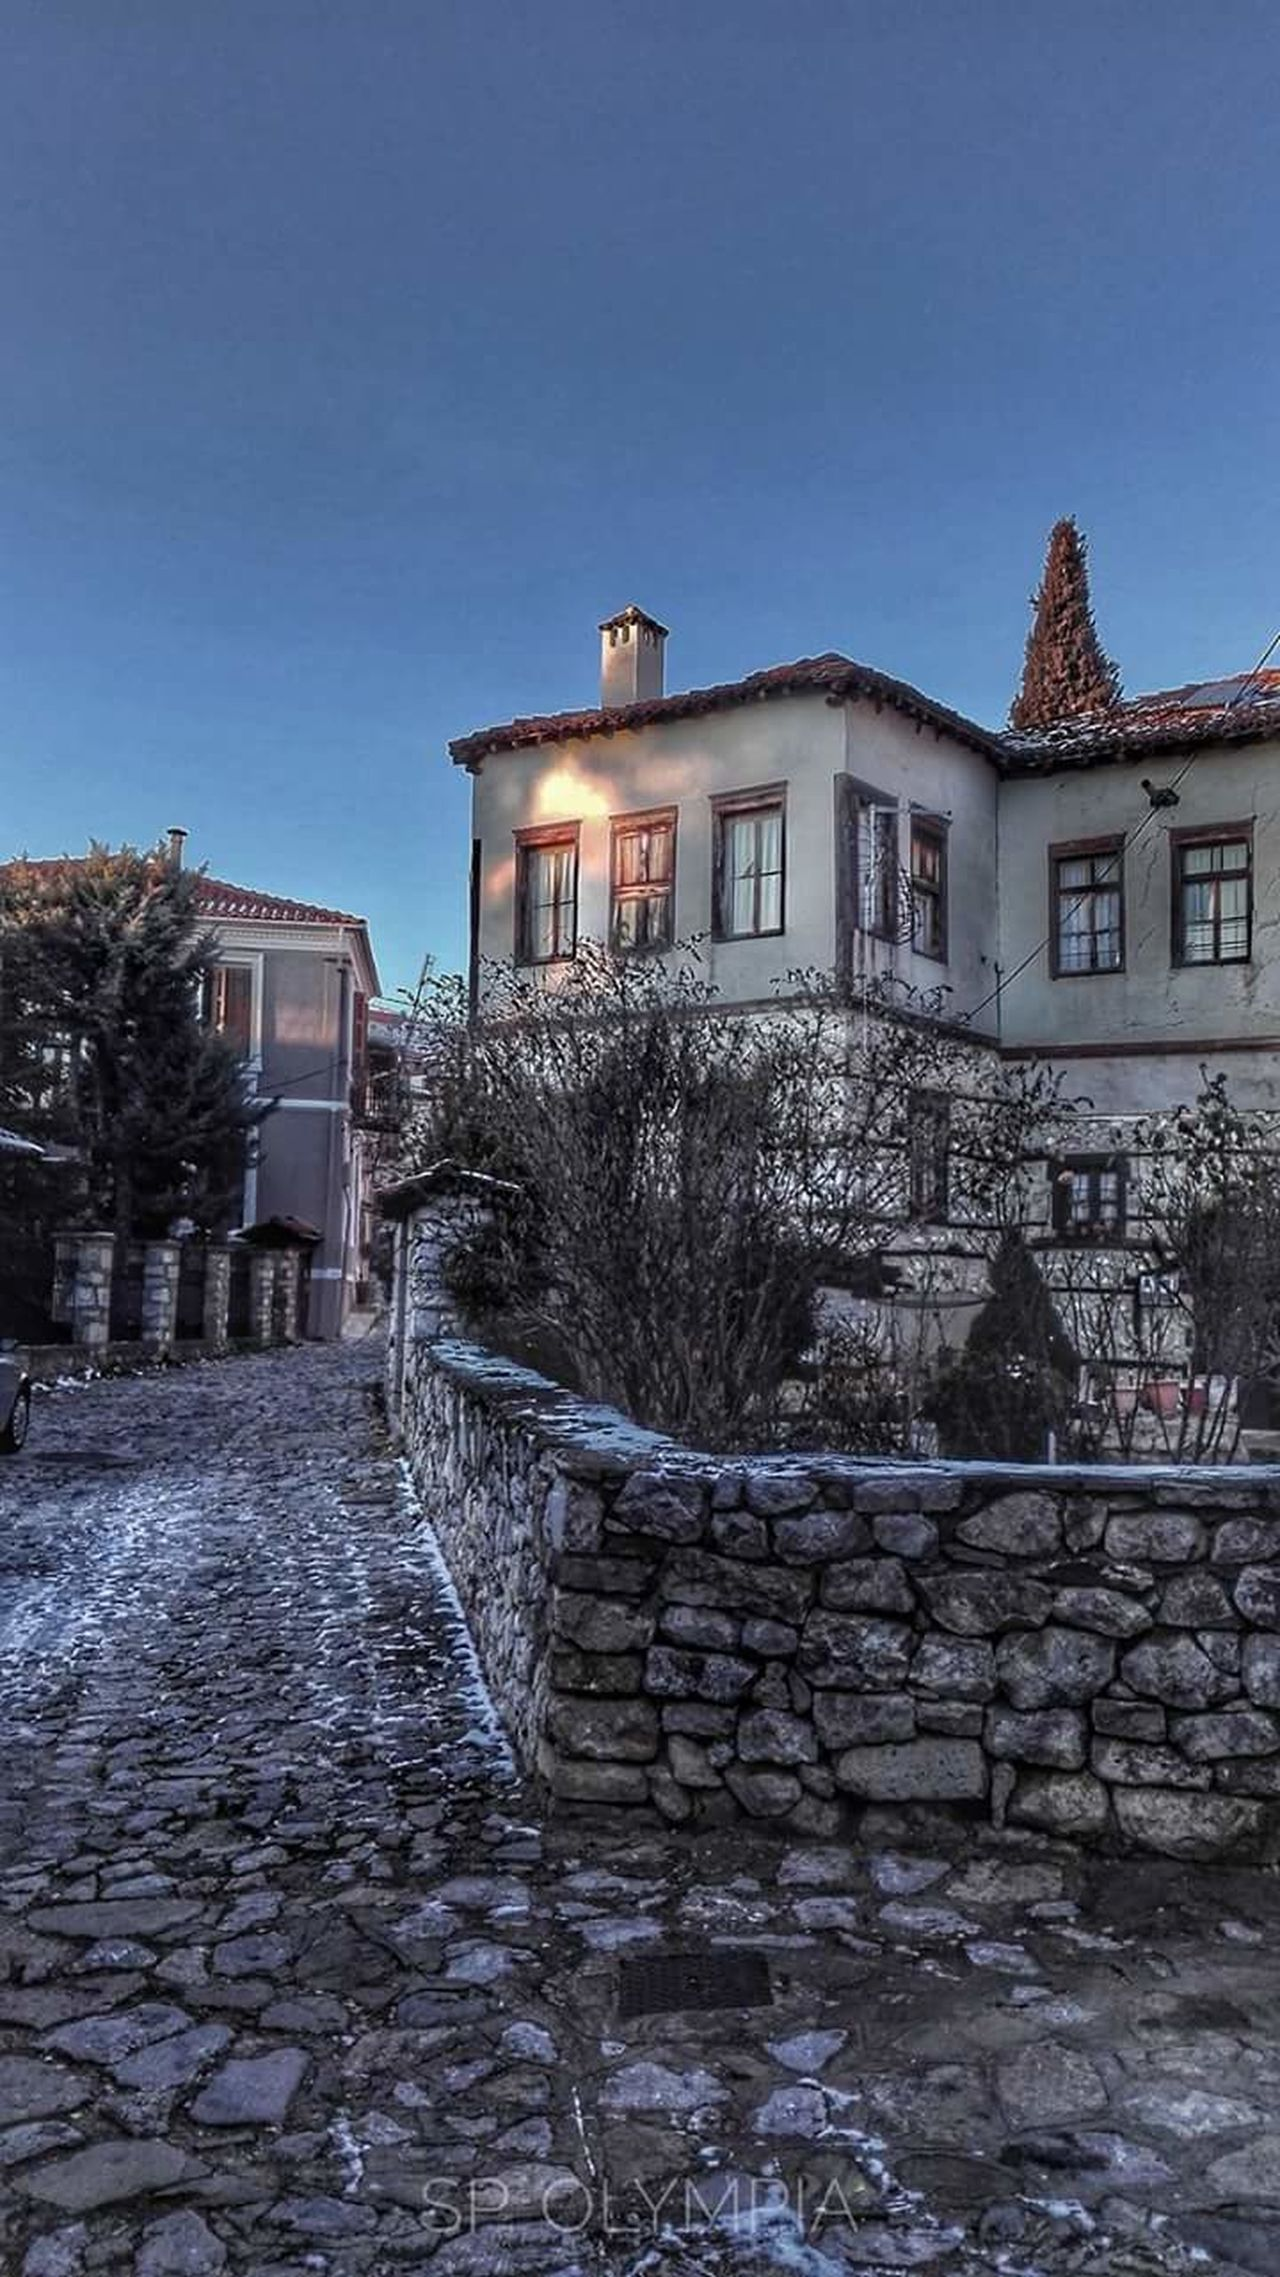 Greece GREECE ♥♥ Home Sweet Home Beauty In Nature Cultures Beautiful Nature Street Photography Travel Travel Destination Kastoriagreece Travel Photography Famous Place Nature Streetphotography Travelling View Travels Kastoria 52100 Greece. House Villa Hellas Enjoying The View Travel Destinations Traditional Culture Travellers